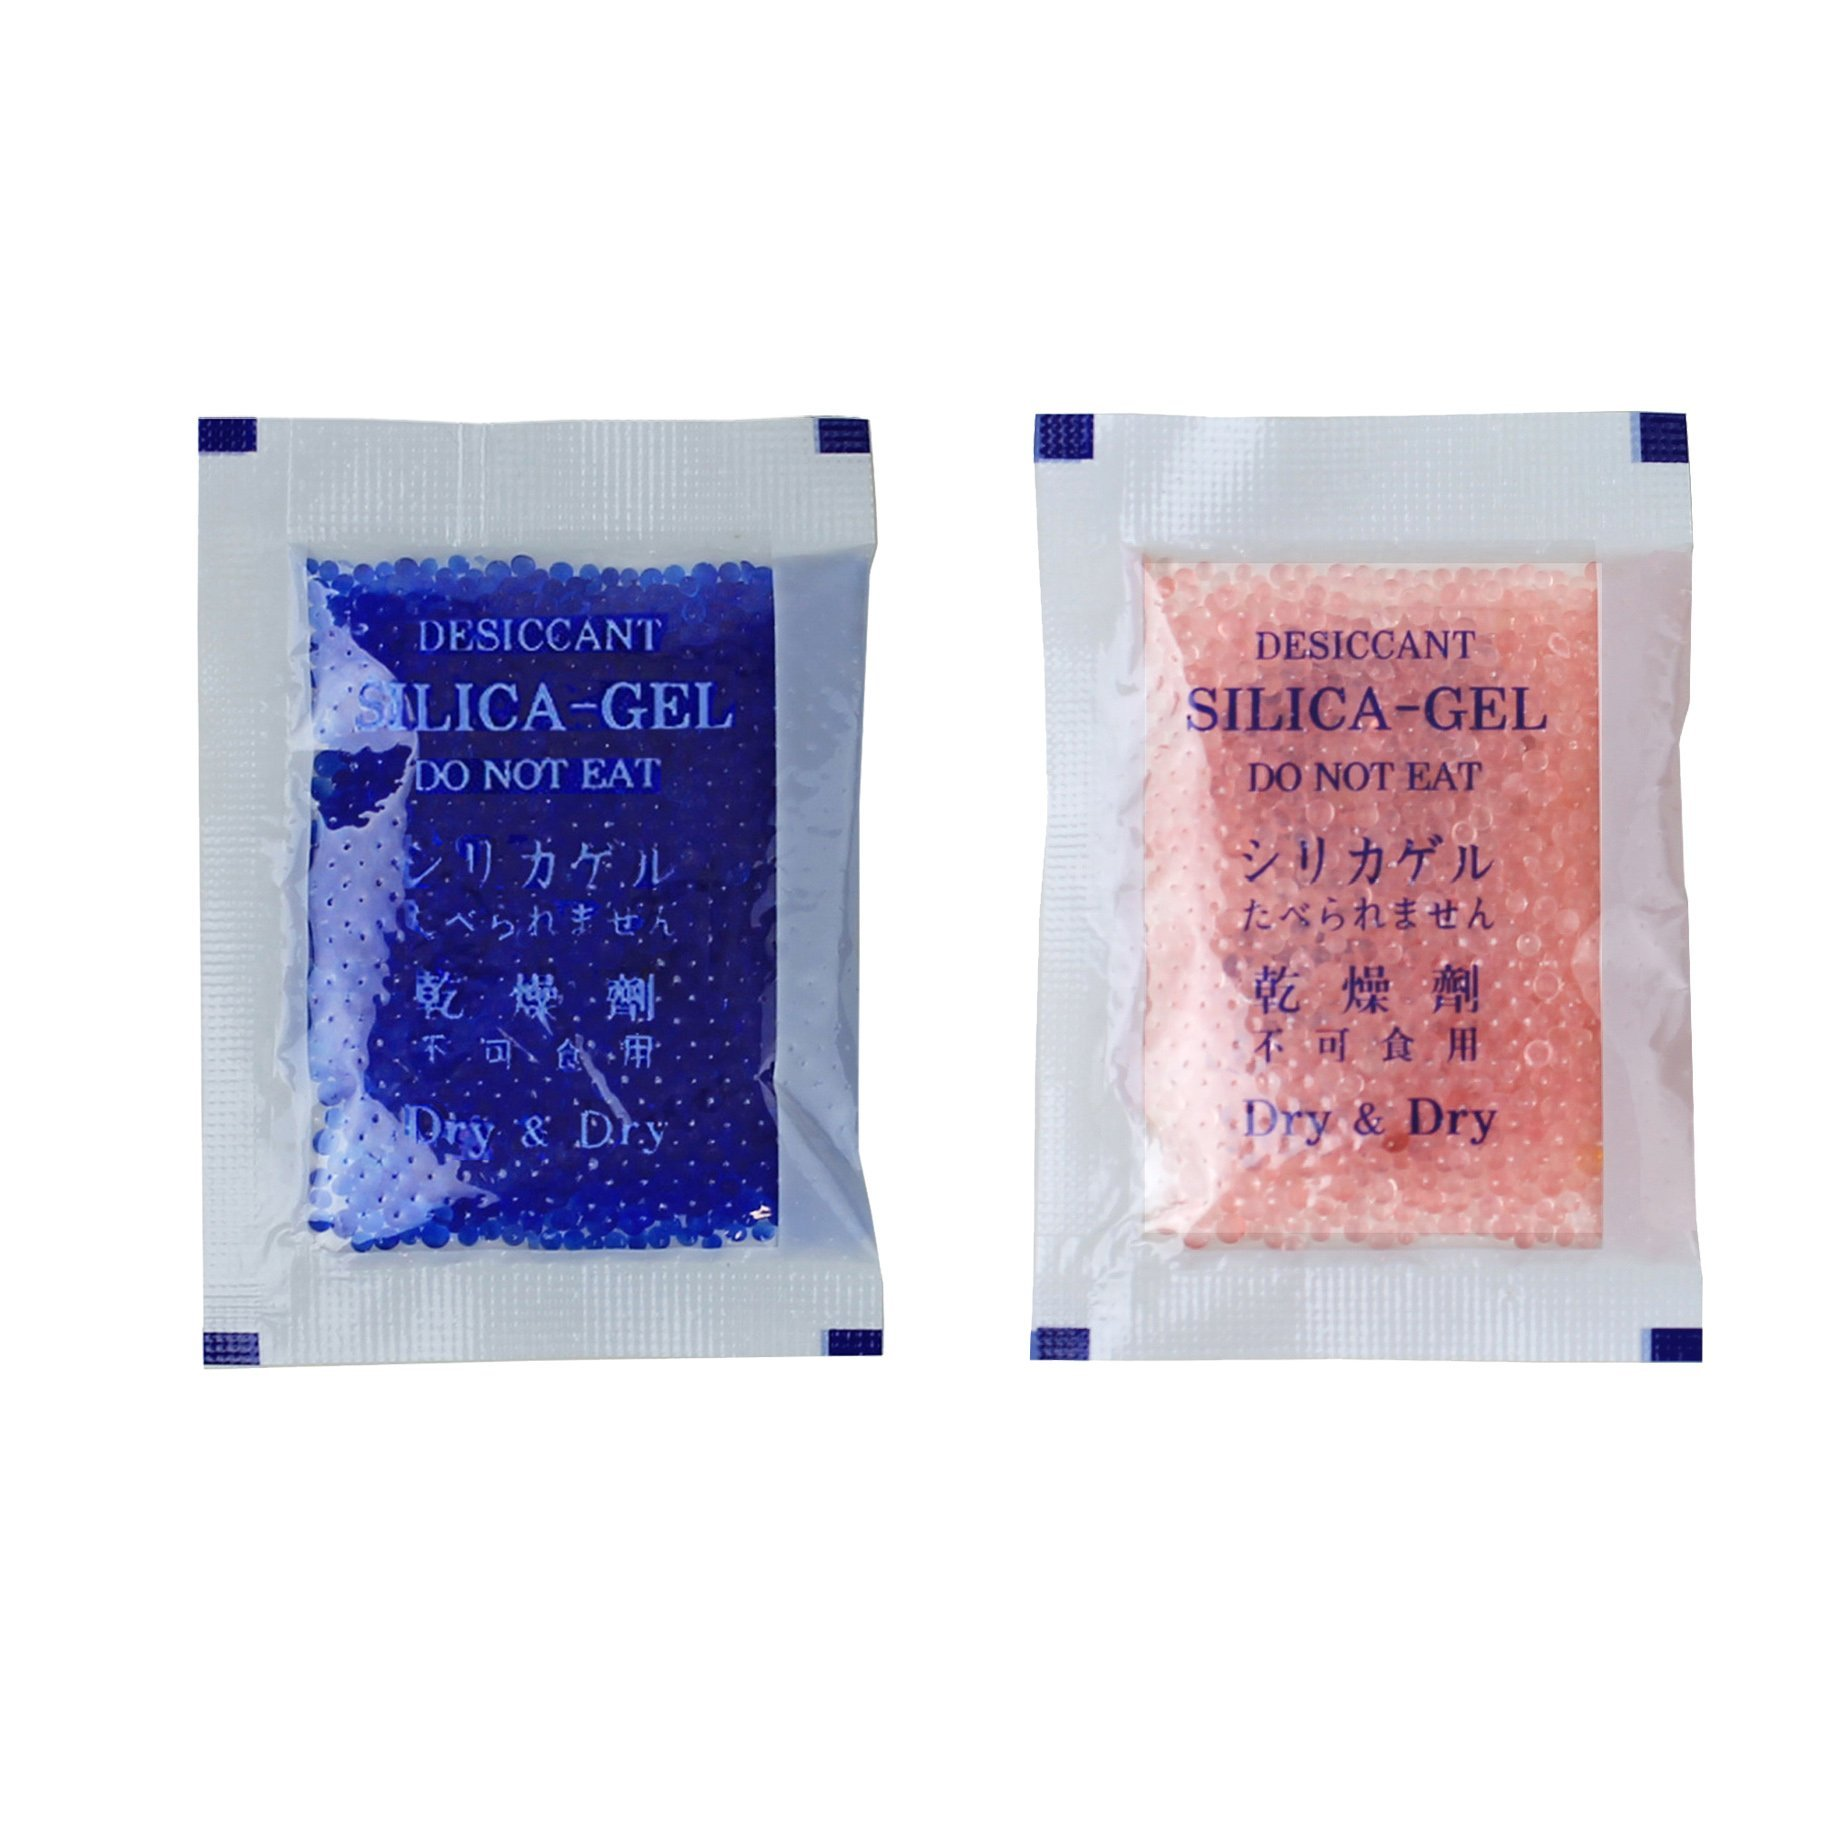 DRY&DRY [50 Packs] 5 Gram Blue Premium Indicating(Blue to Pink) Silica Gel Packets - Rechargeable(Upgraded)